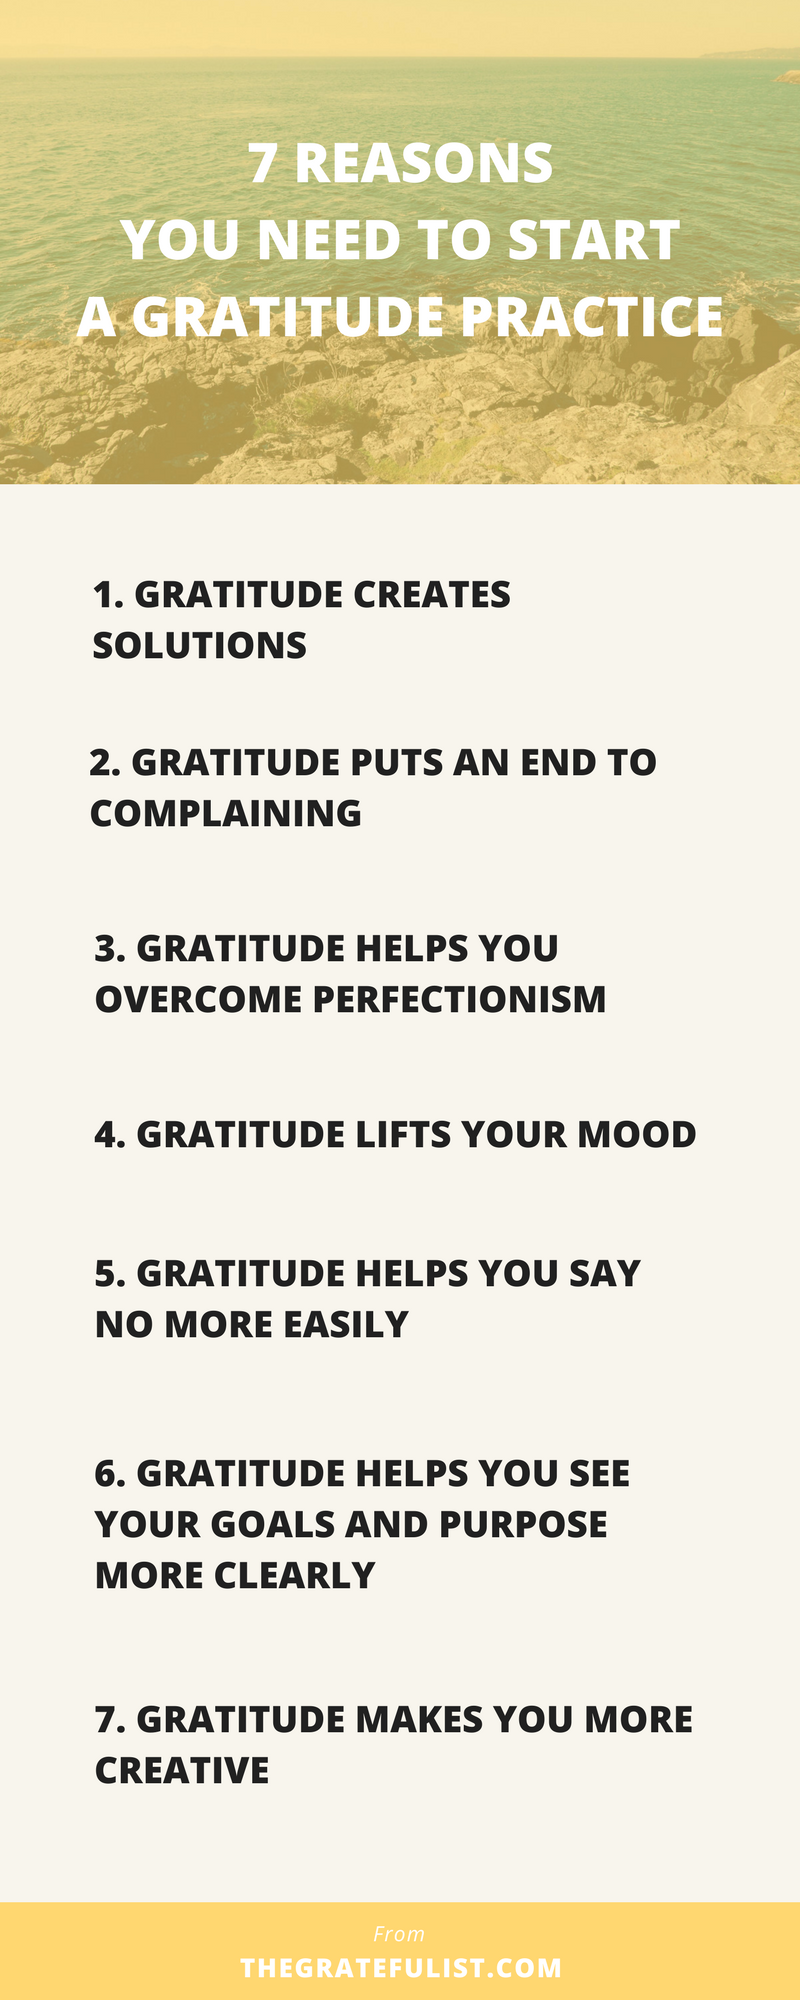 Starting a gratitude practice is the best choice I've ever made. Not only does practicing gratitude have many benefits for body and mind, gratitude also has a few practical benefits that will help make your day-to-day life easier, less stressful, and more fulfilling. In fact, there are 7 practical reasons you need to start a gratitude practice today. Whaaat! Click through to learn all about them. Plus, there's a free gratitude toolbox waiting for you!